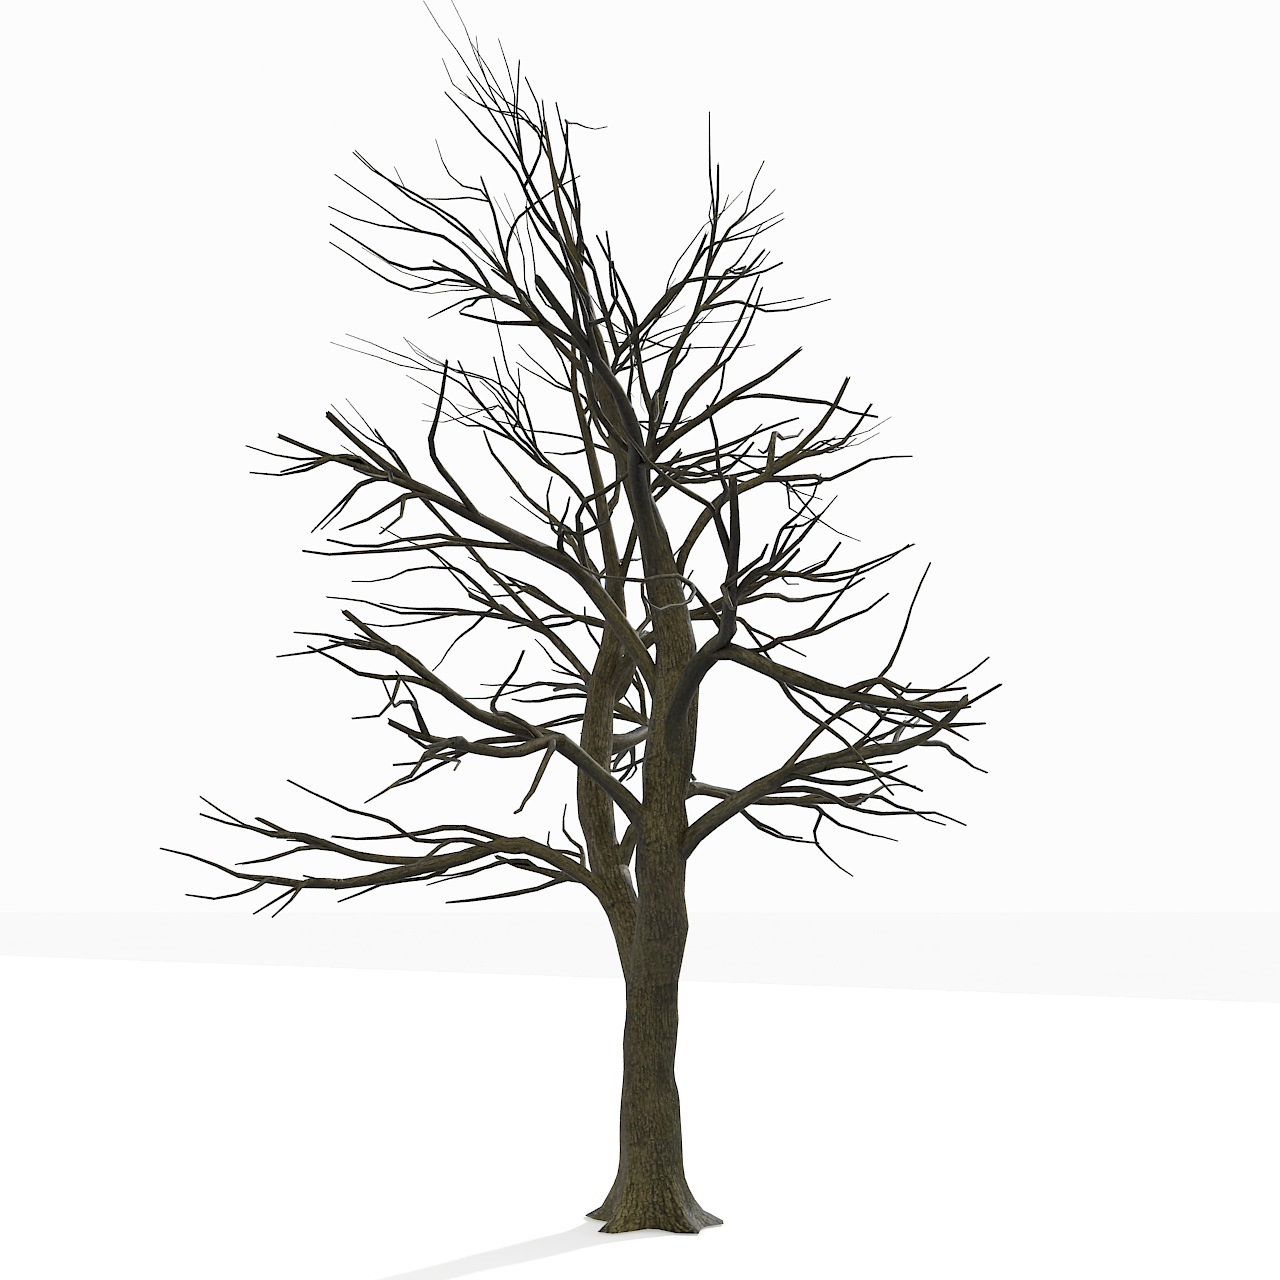 Bare Leafless Autumn Tree 3D Model .max .obj .3ds .fbx - CGTrader.